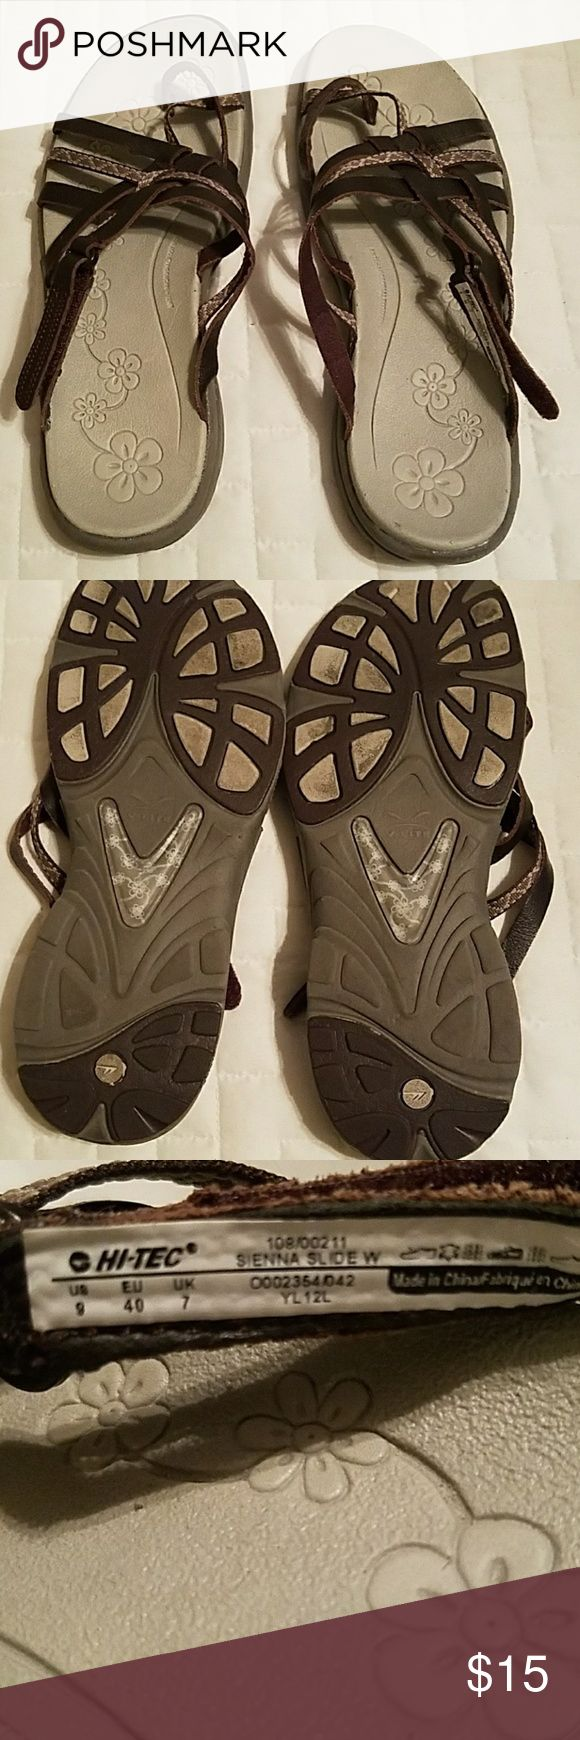 Sandals or shoes for hiking - Hitec Hiking Sandals